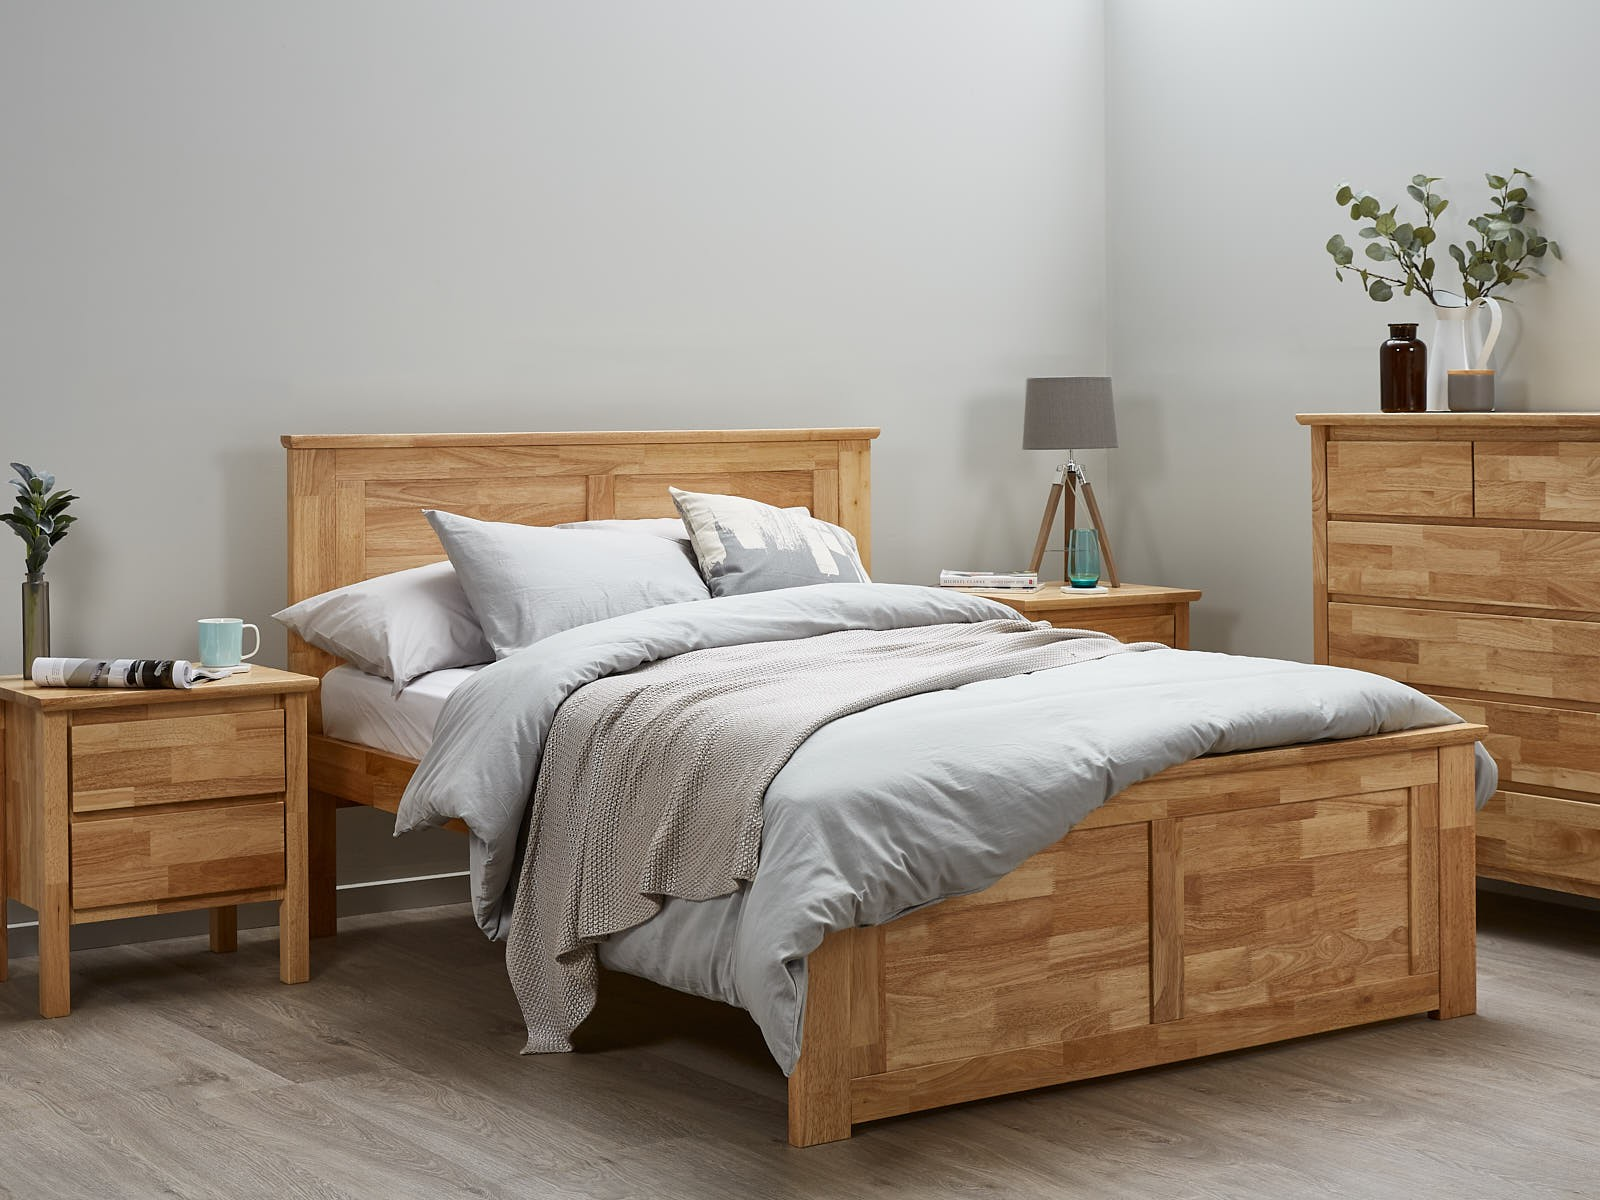 double bed frames fantastic hardwood double bed frame - natural XIORNJS